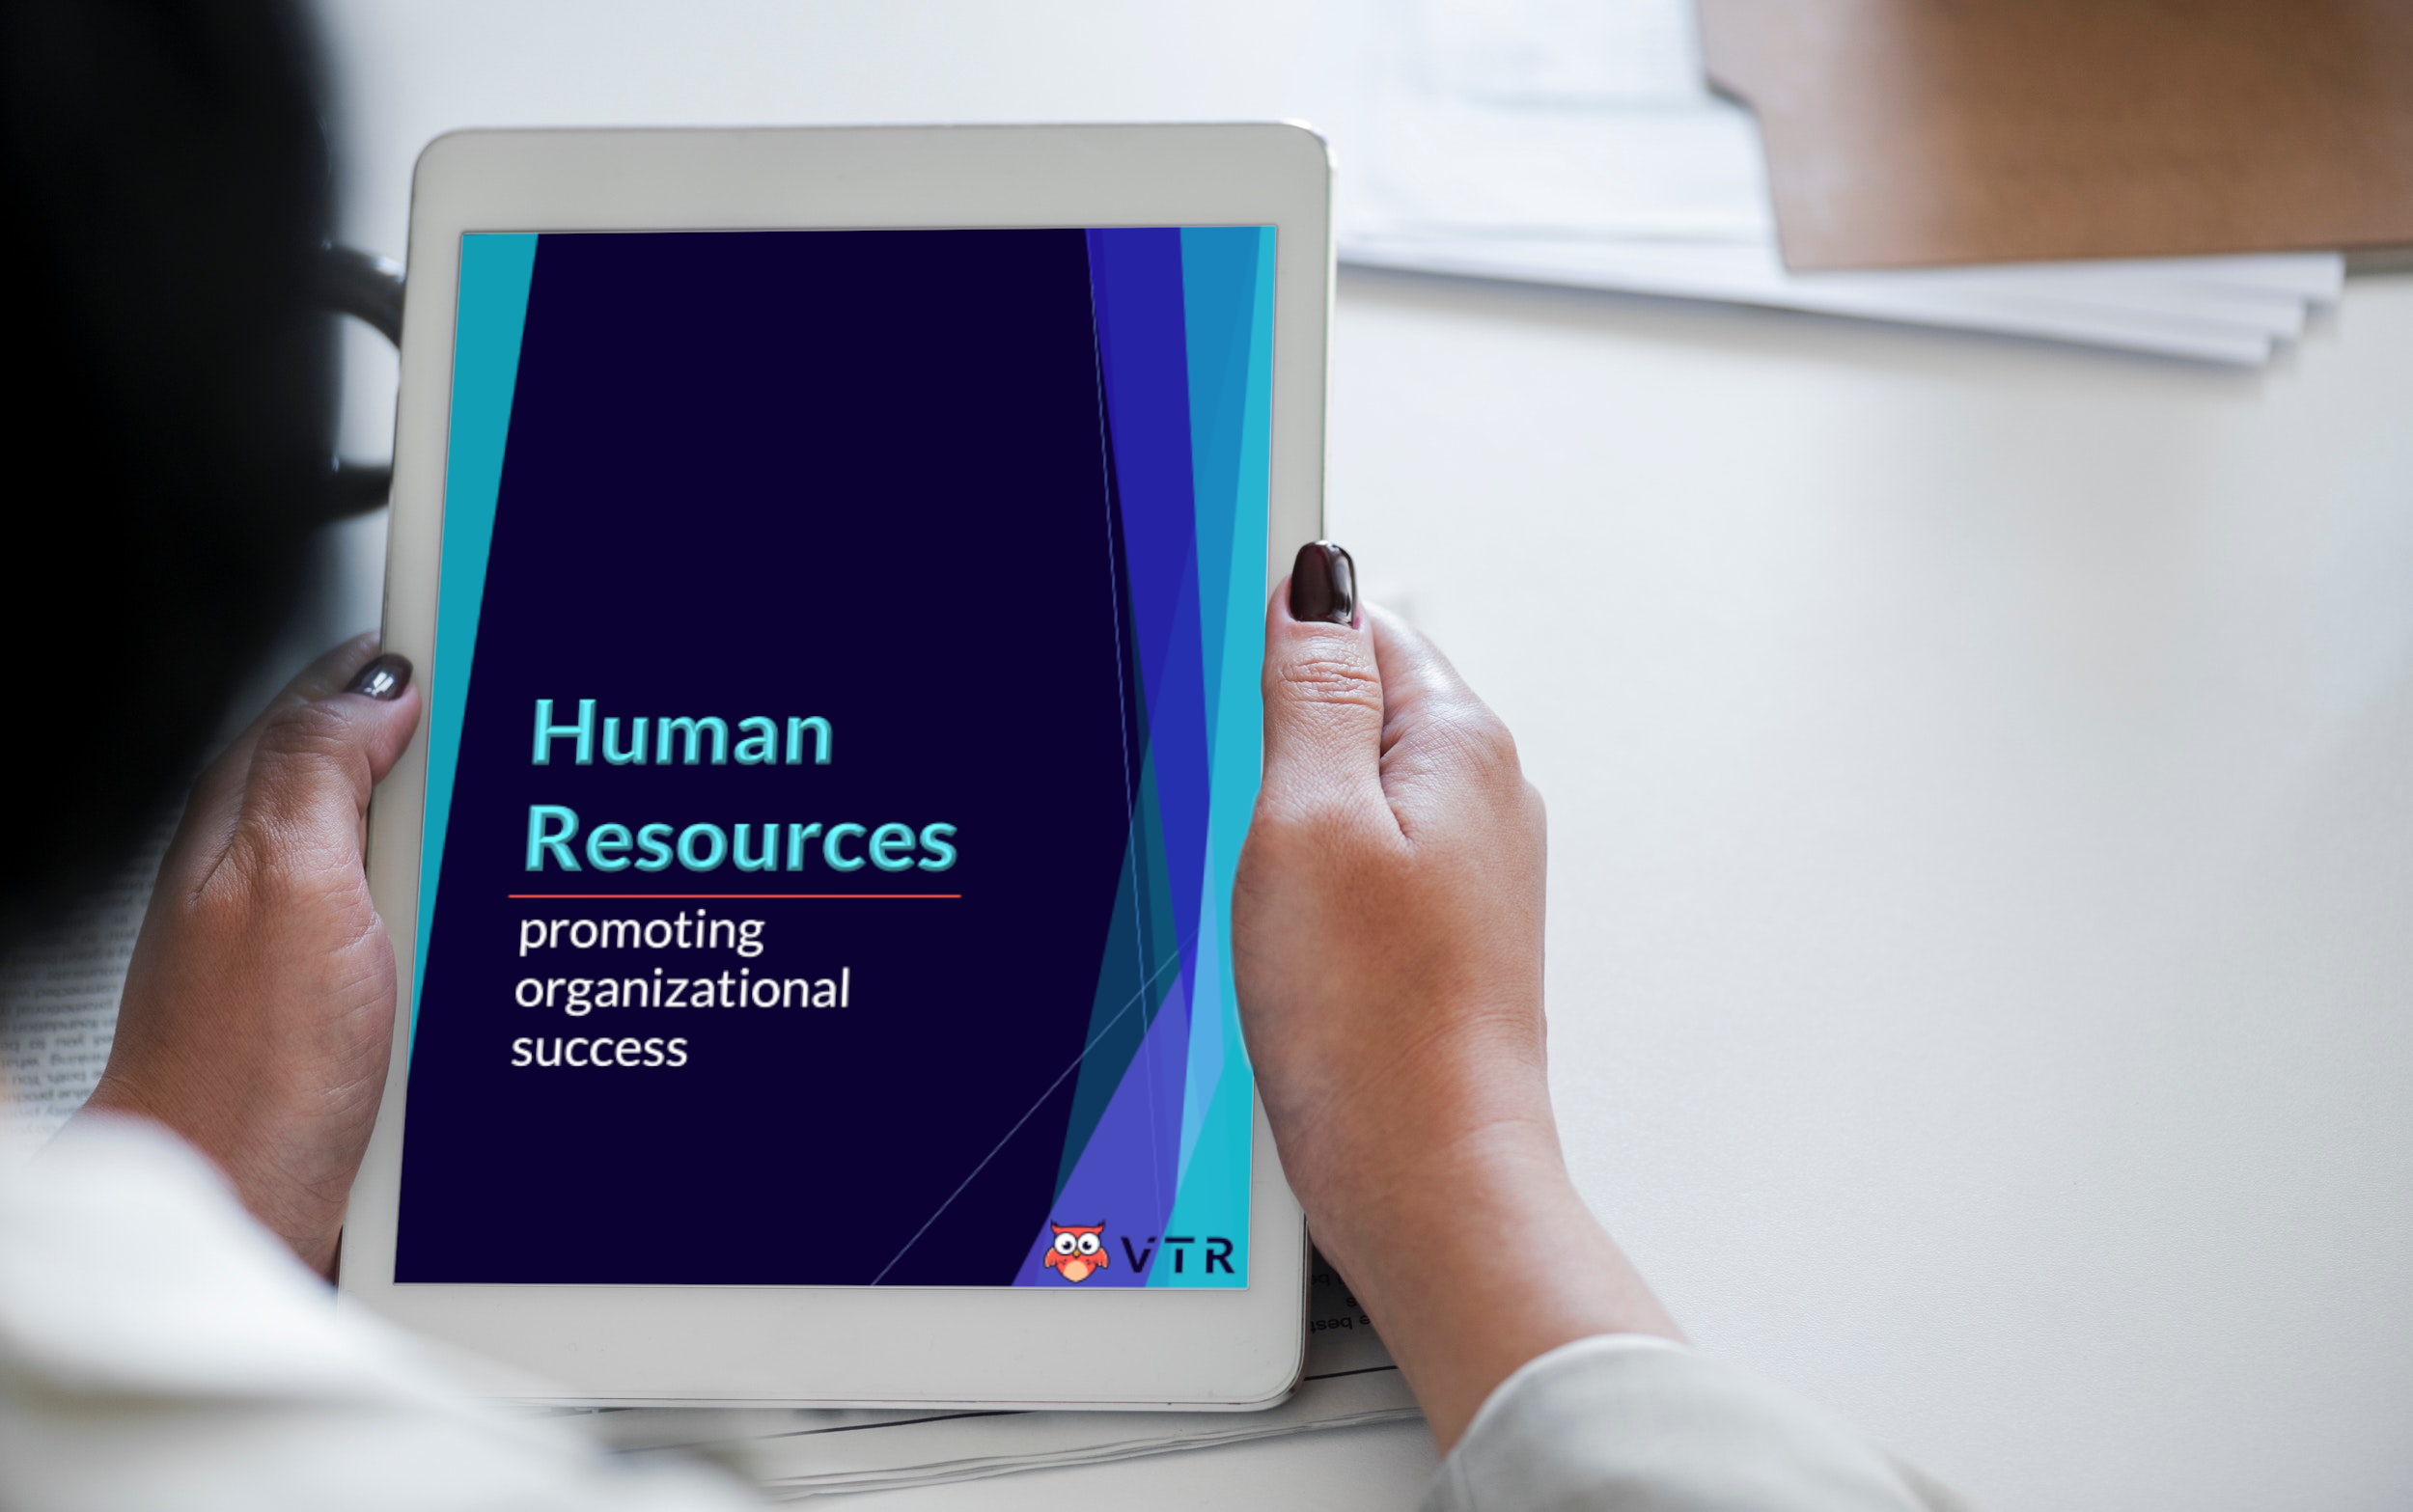 Human Resources ebook open on a tablet